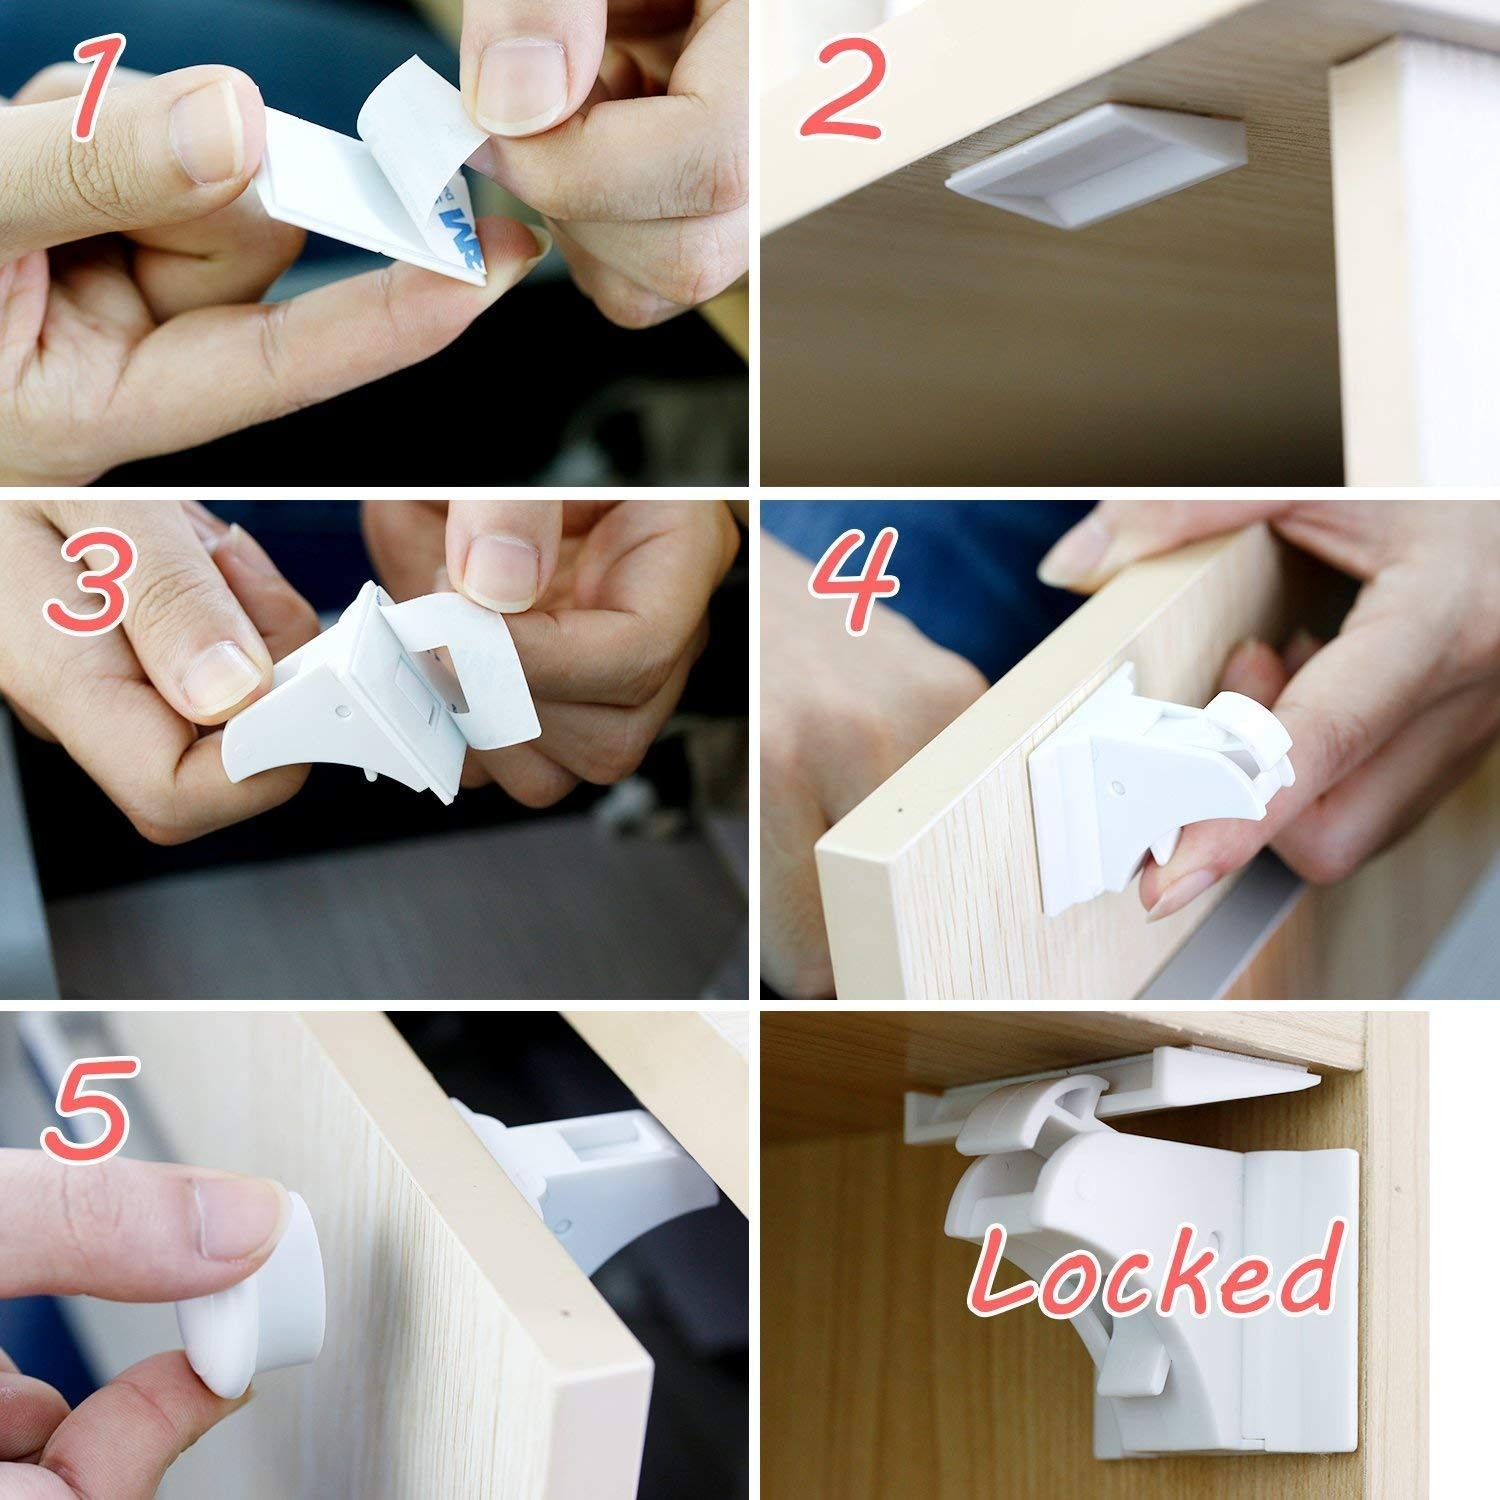 TOOLIC Magnetic Child Safety Locks Kits for Cabinet Drawer Cupboard Door Baby Proof Invisible No Drilling Design (3 Keys & 20 Locks) by TOOLIC (Image #3)